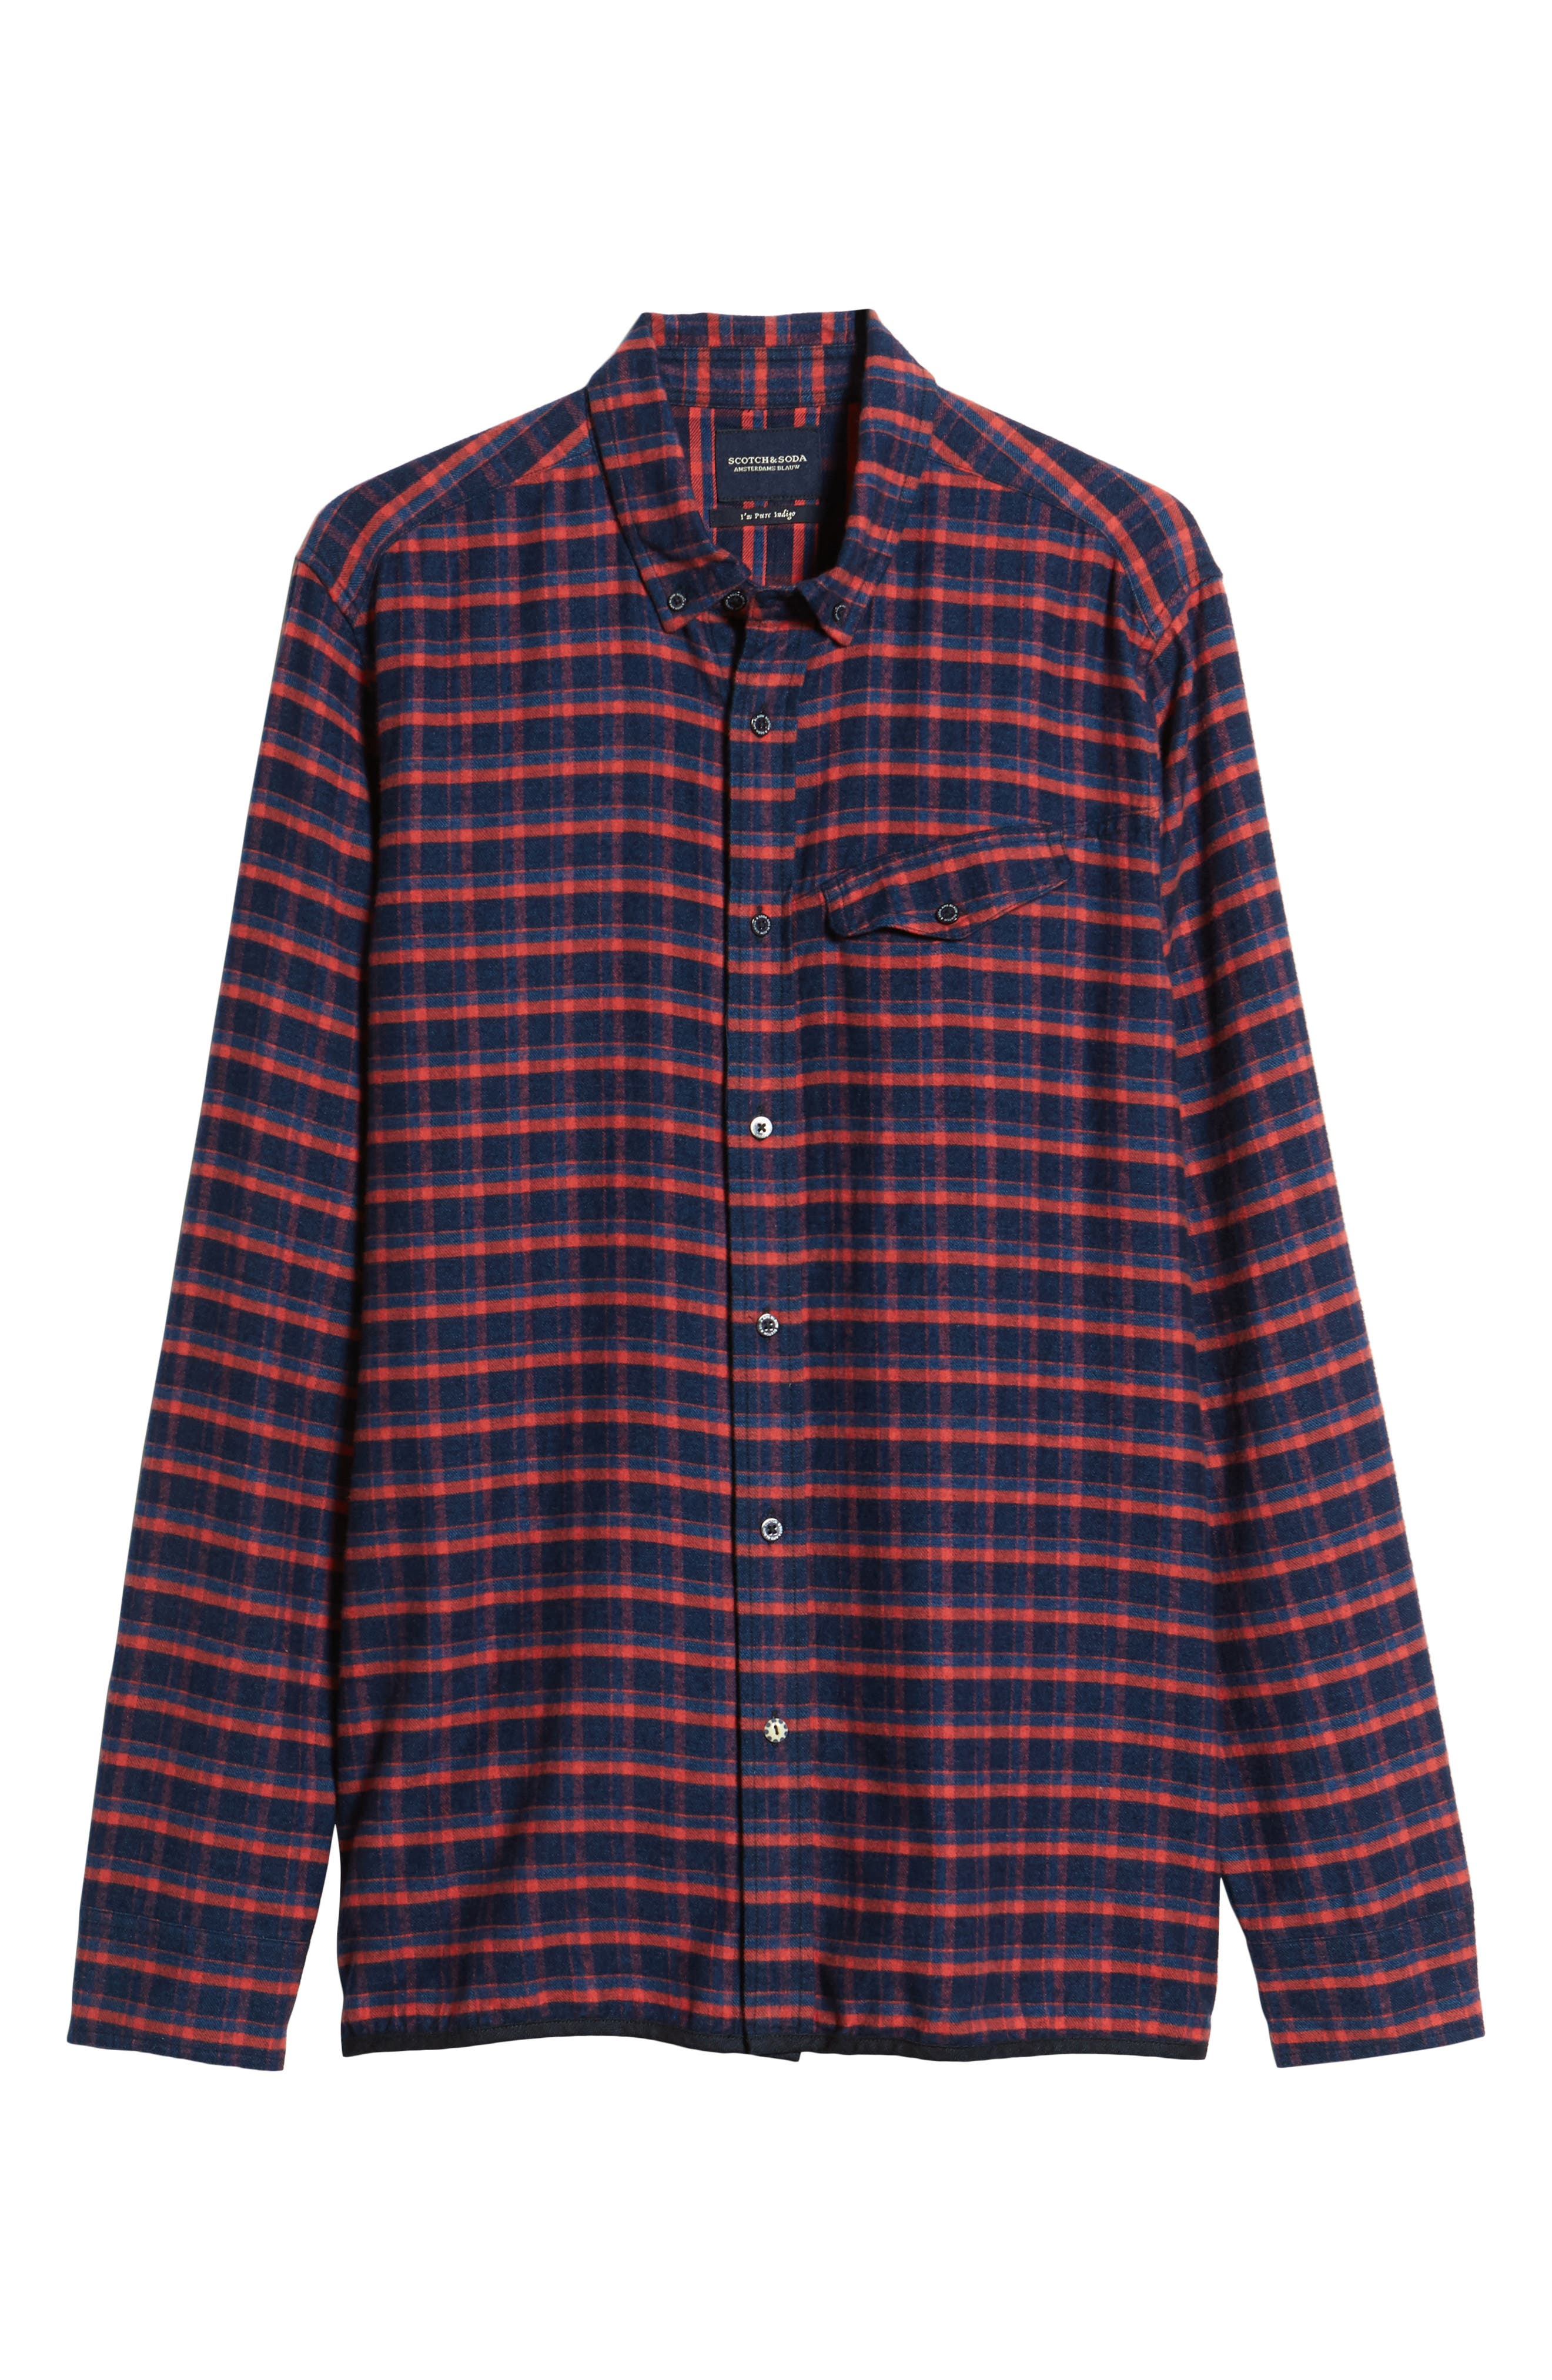 Amsterdams Blauw Check Flannel Sport Shirt,                             Alternate thumbnail 6, color,                             411